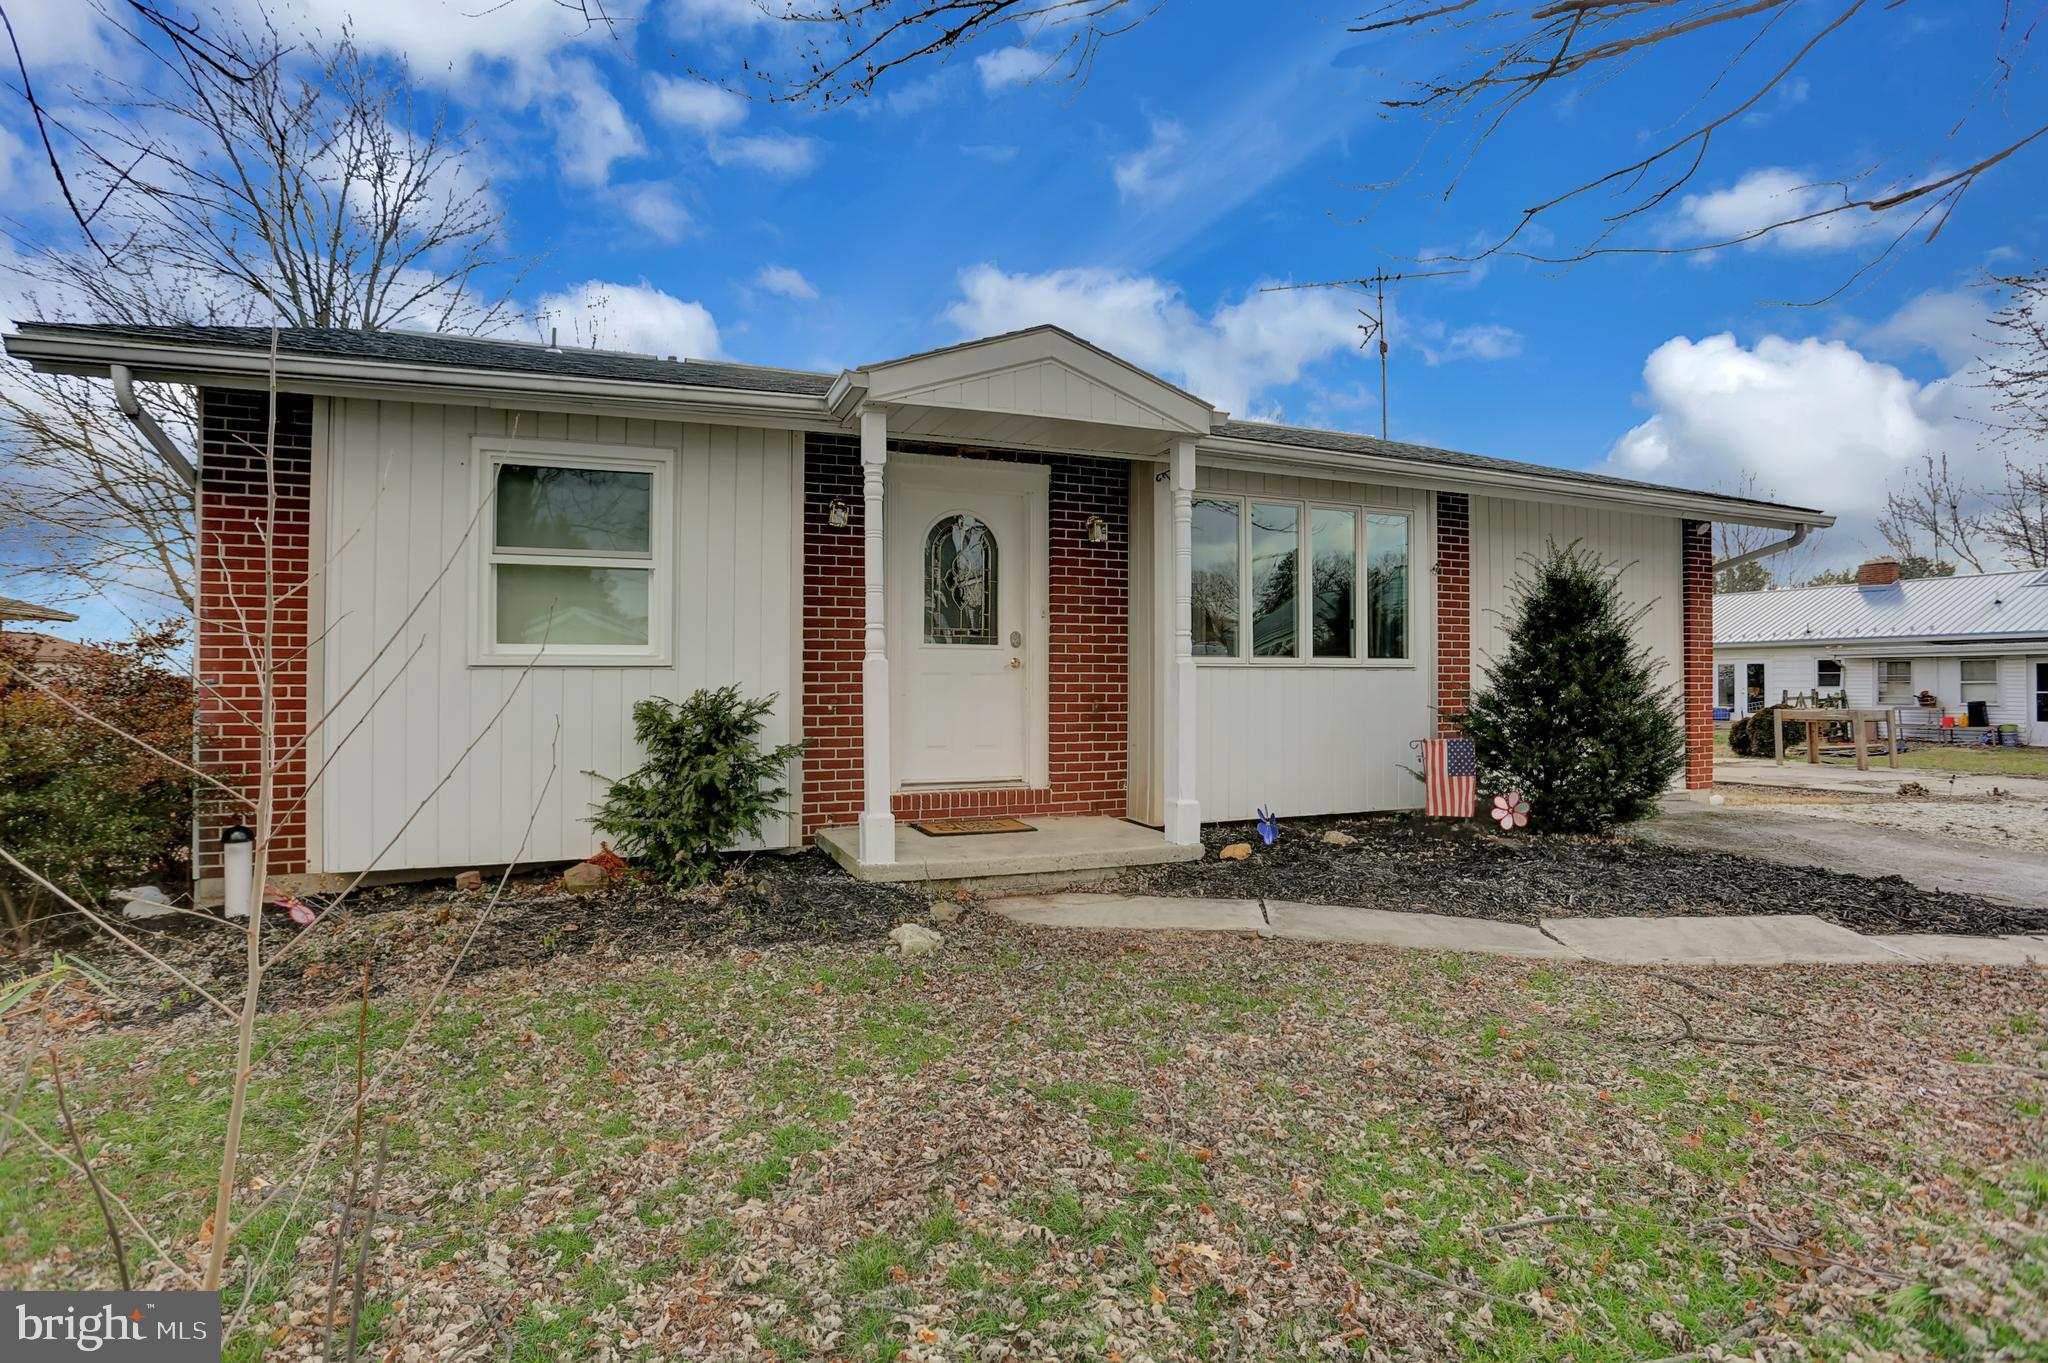 70 CLEARVIEW LANE, BIGLERVILLE, PA 17307